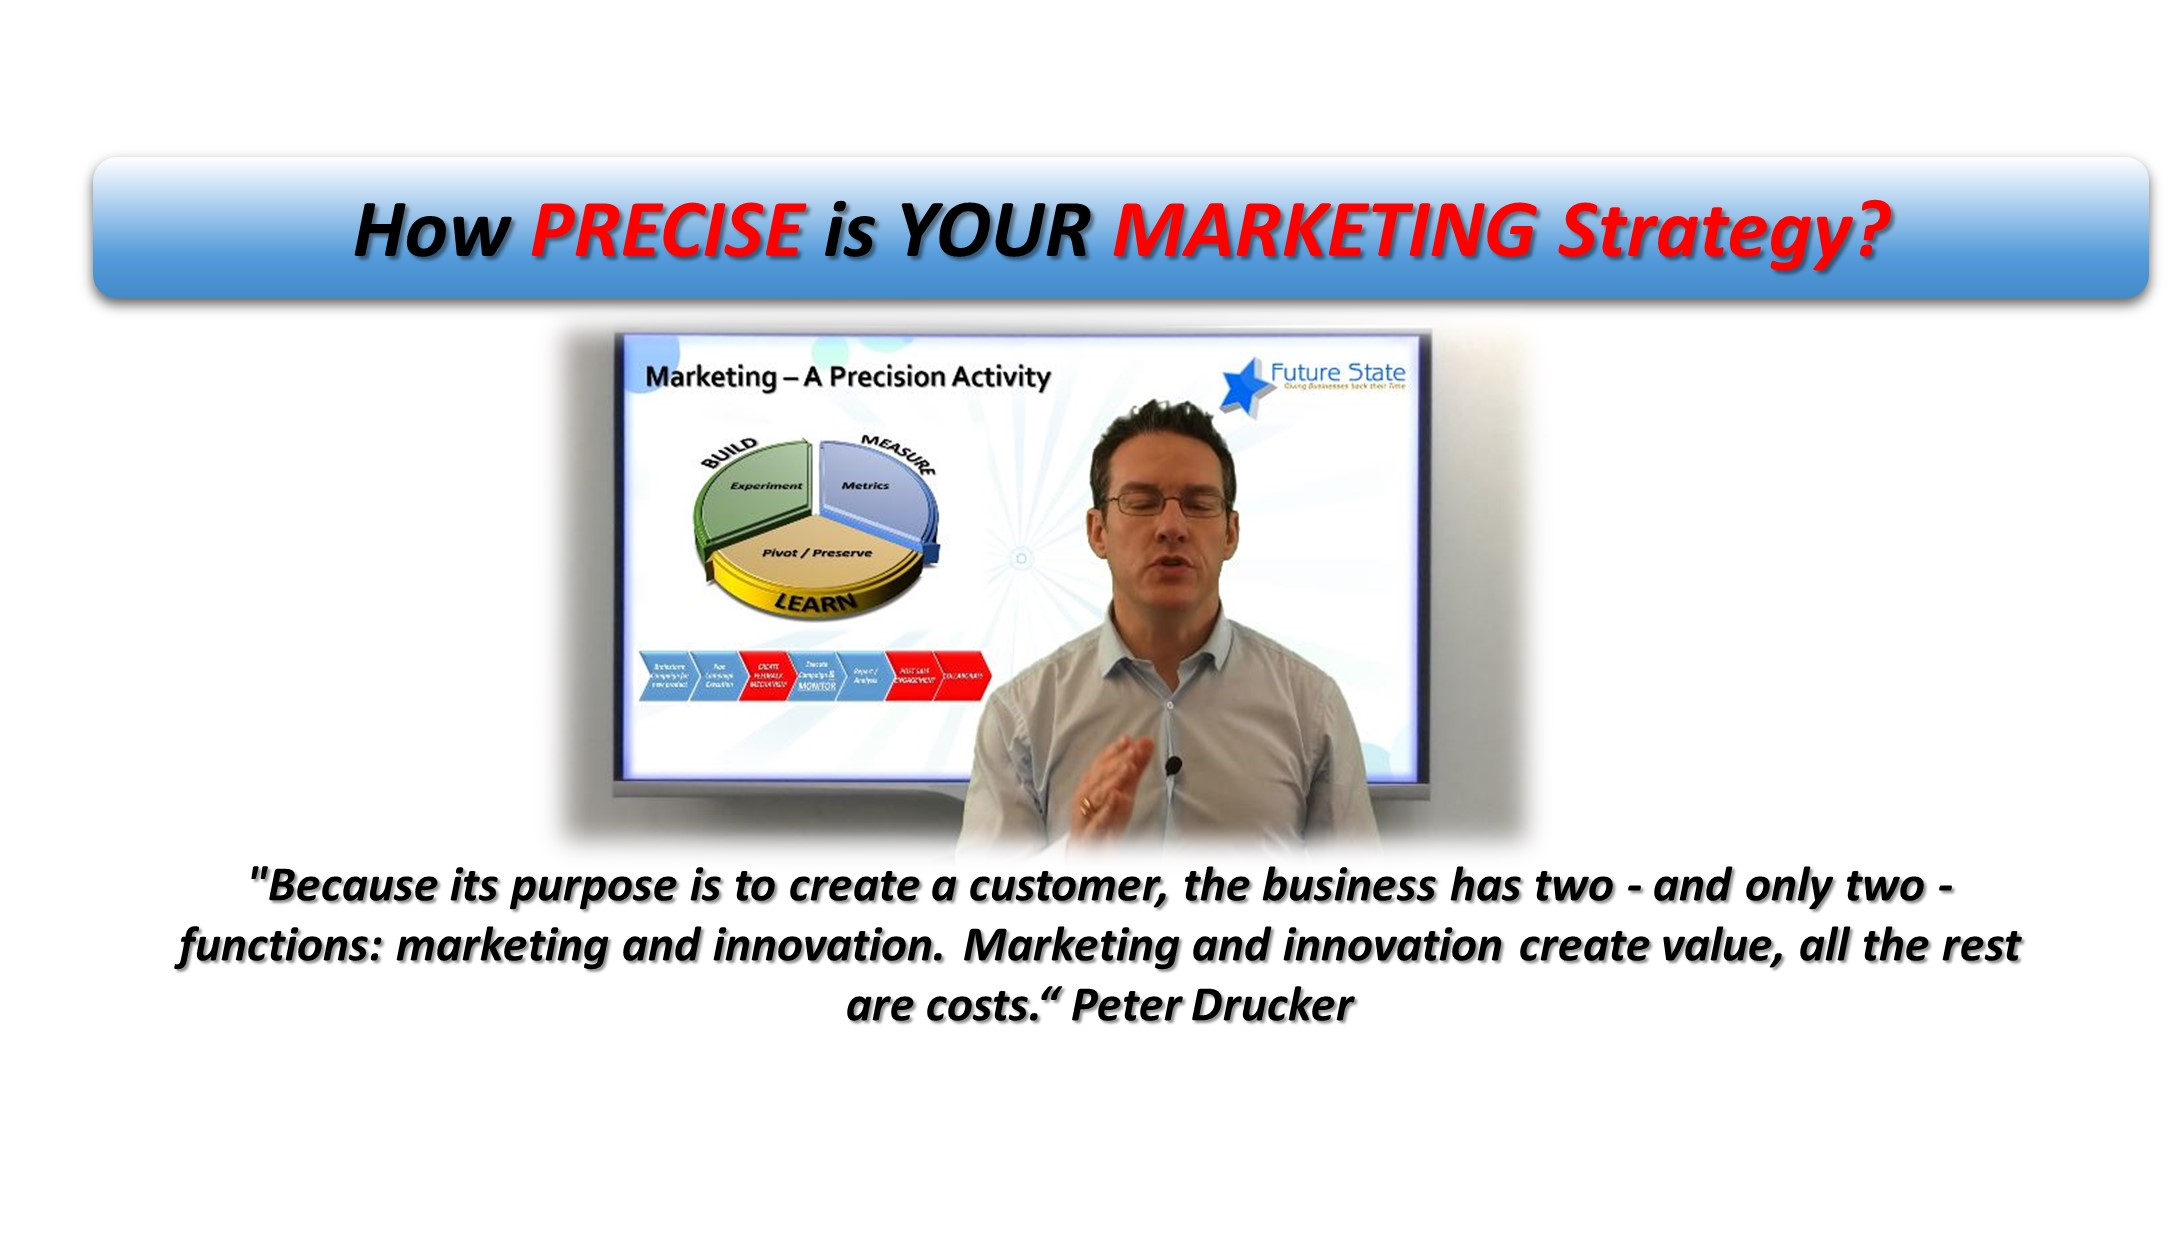 How Precise is YOUR Marketing Strategy?